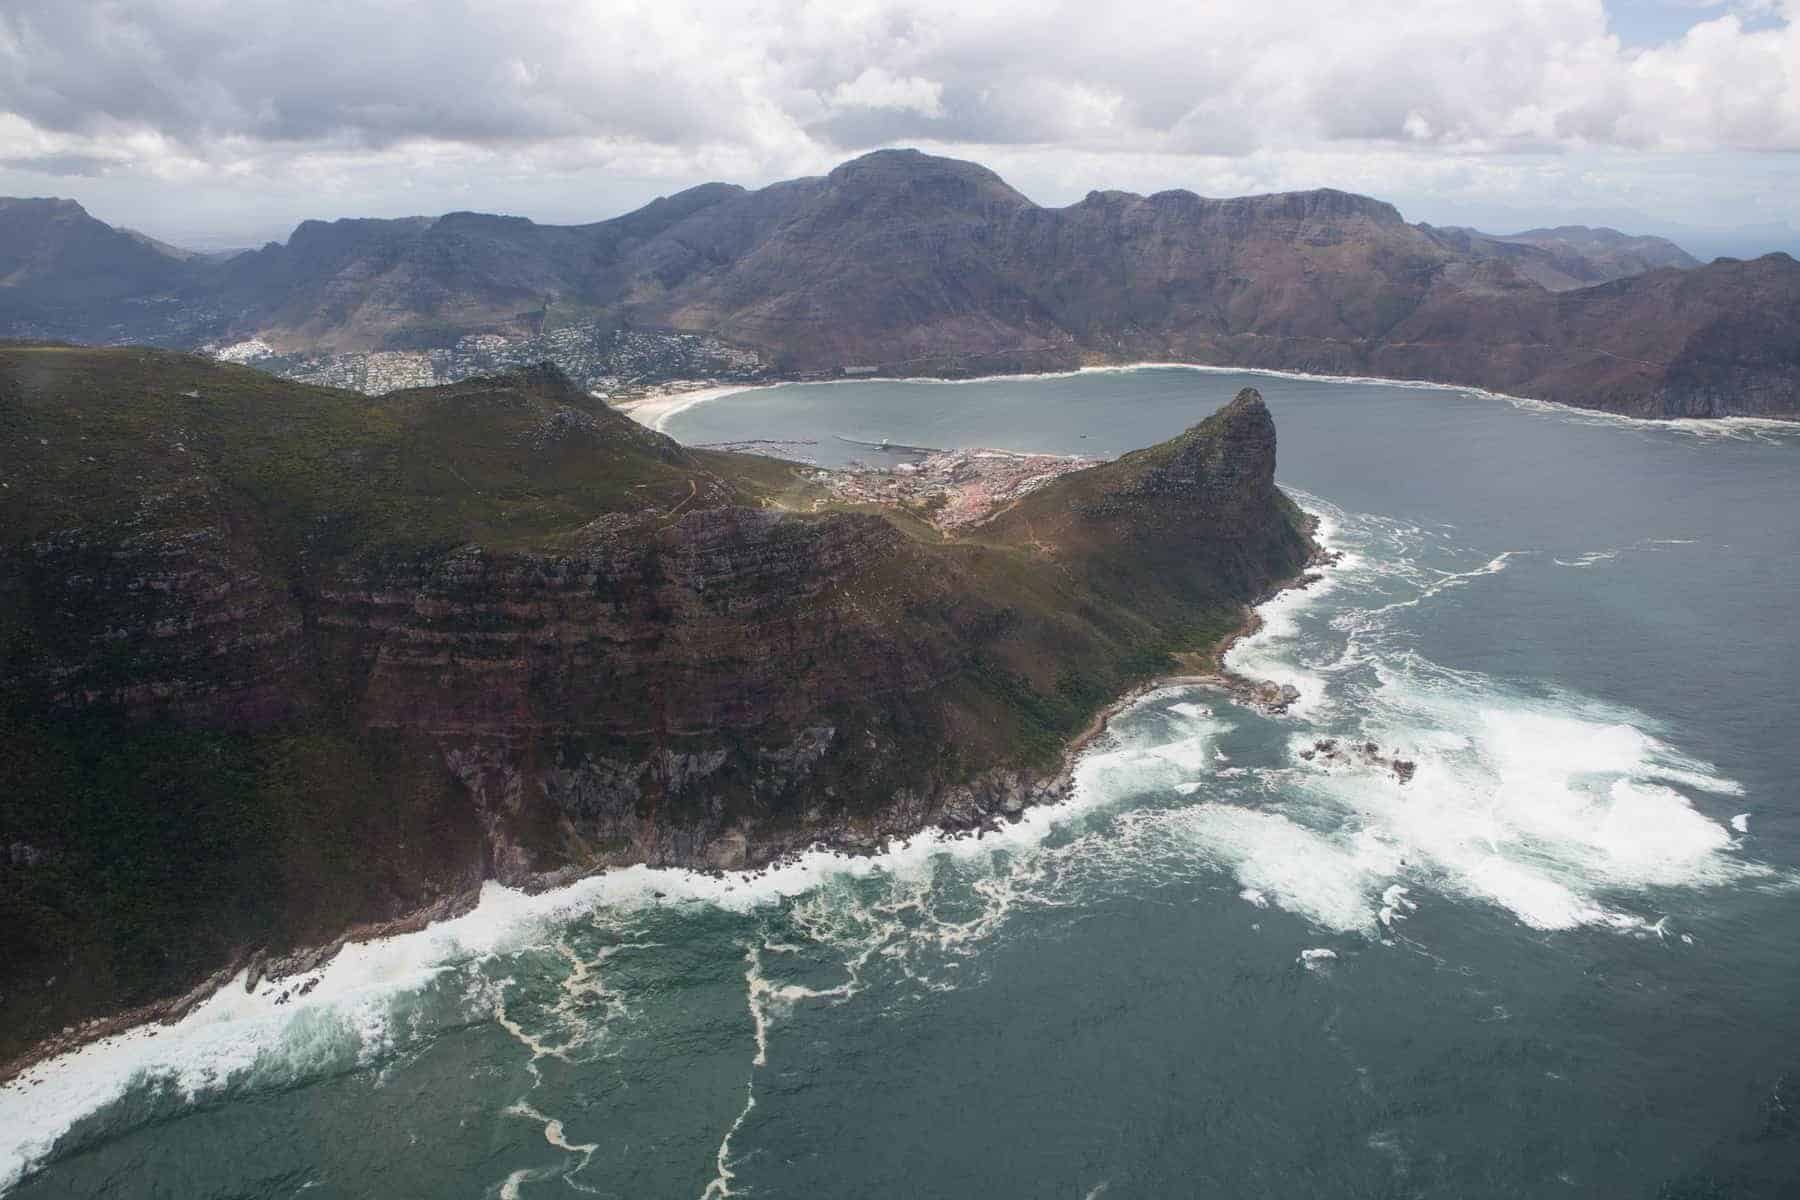 Cape Town south Africa view from helicopter peninsula atlantic ocean view